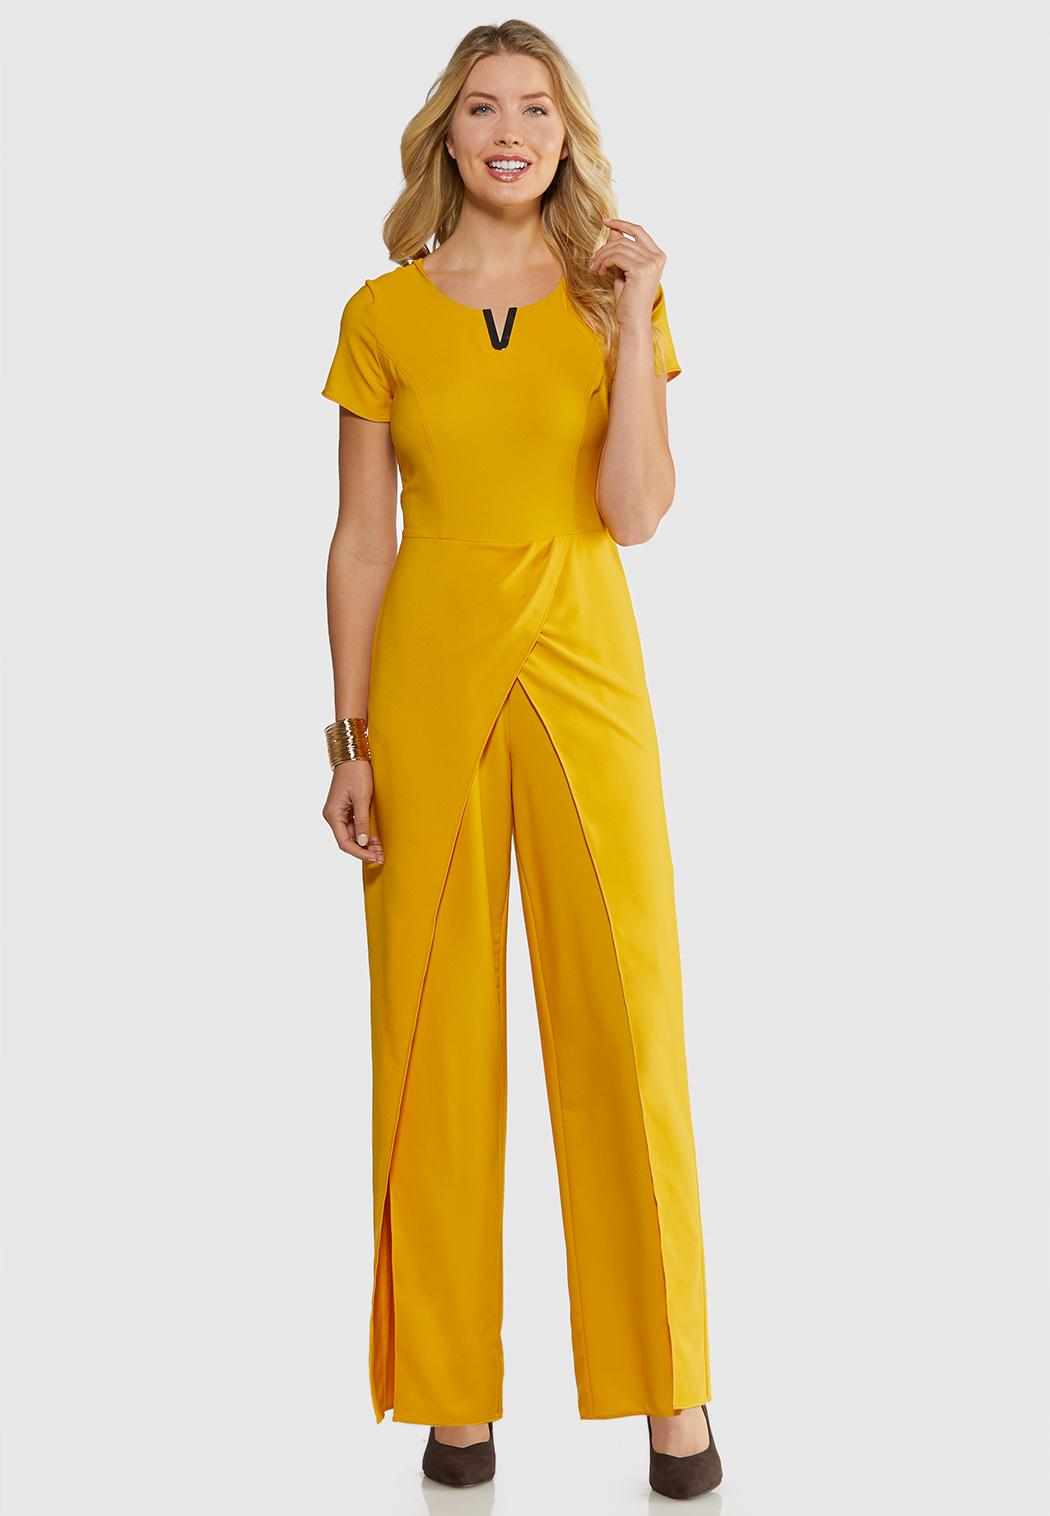 Plus Size Embellished Gold Jumpsuit Jumpsuits Cato Fashions